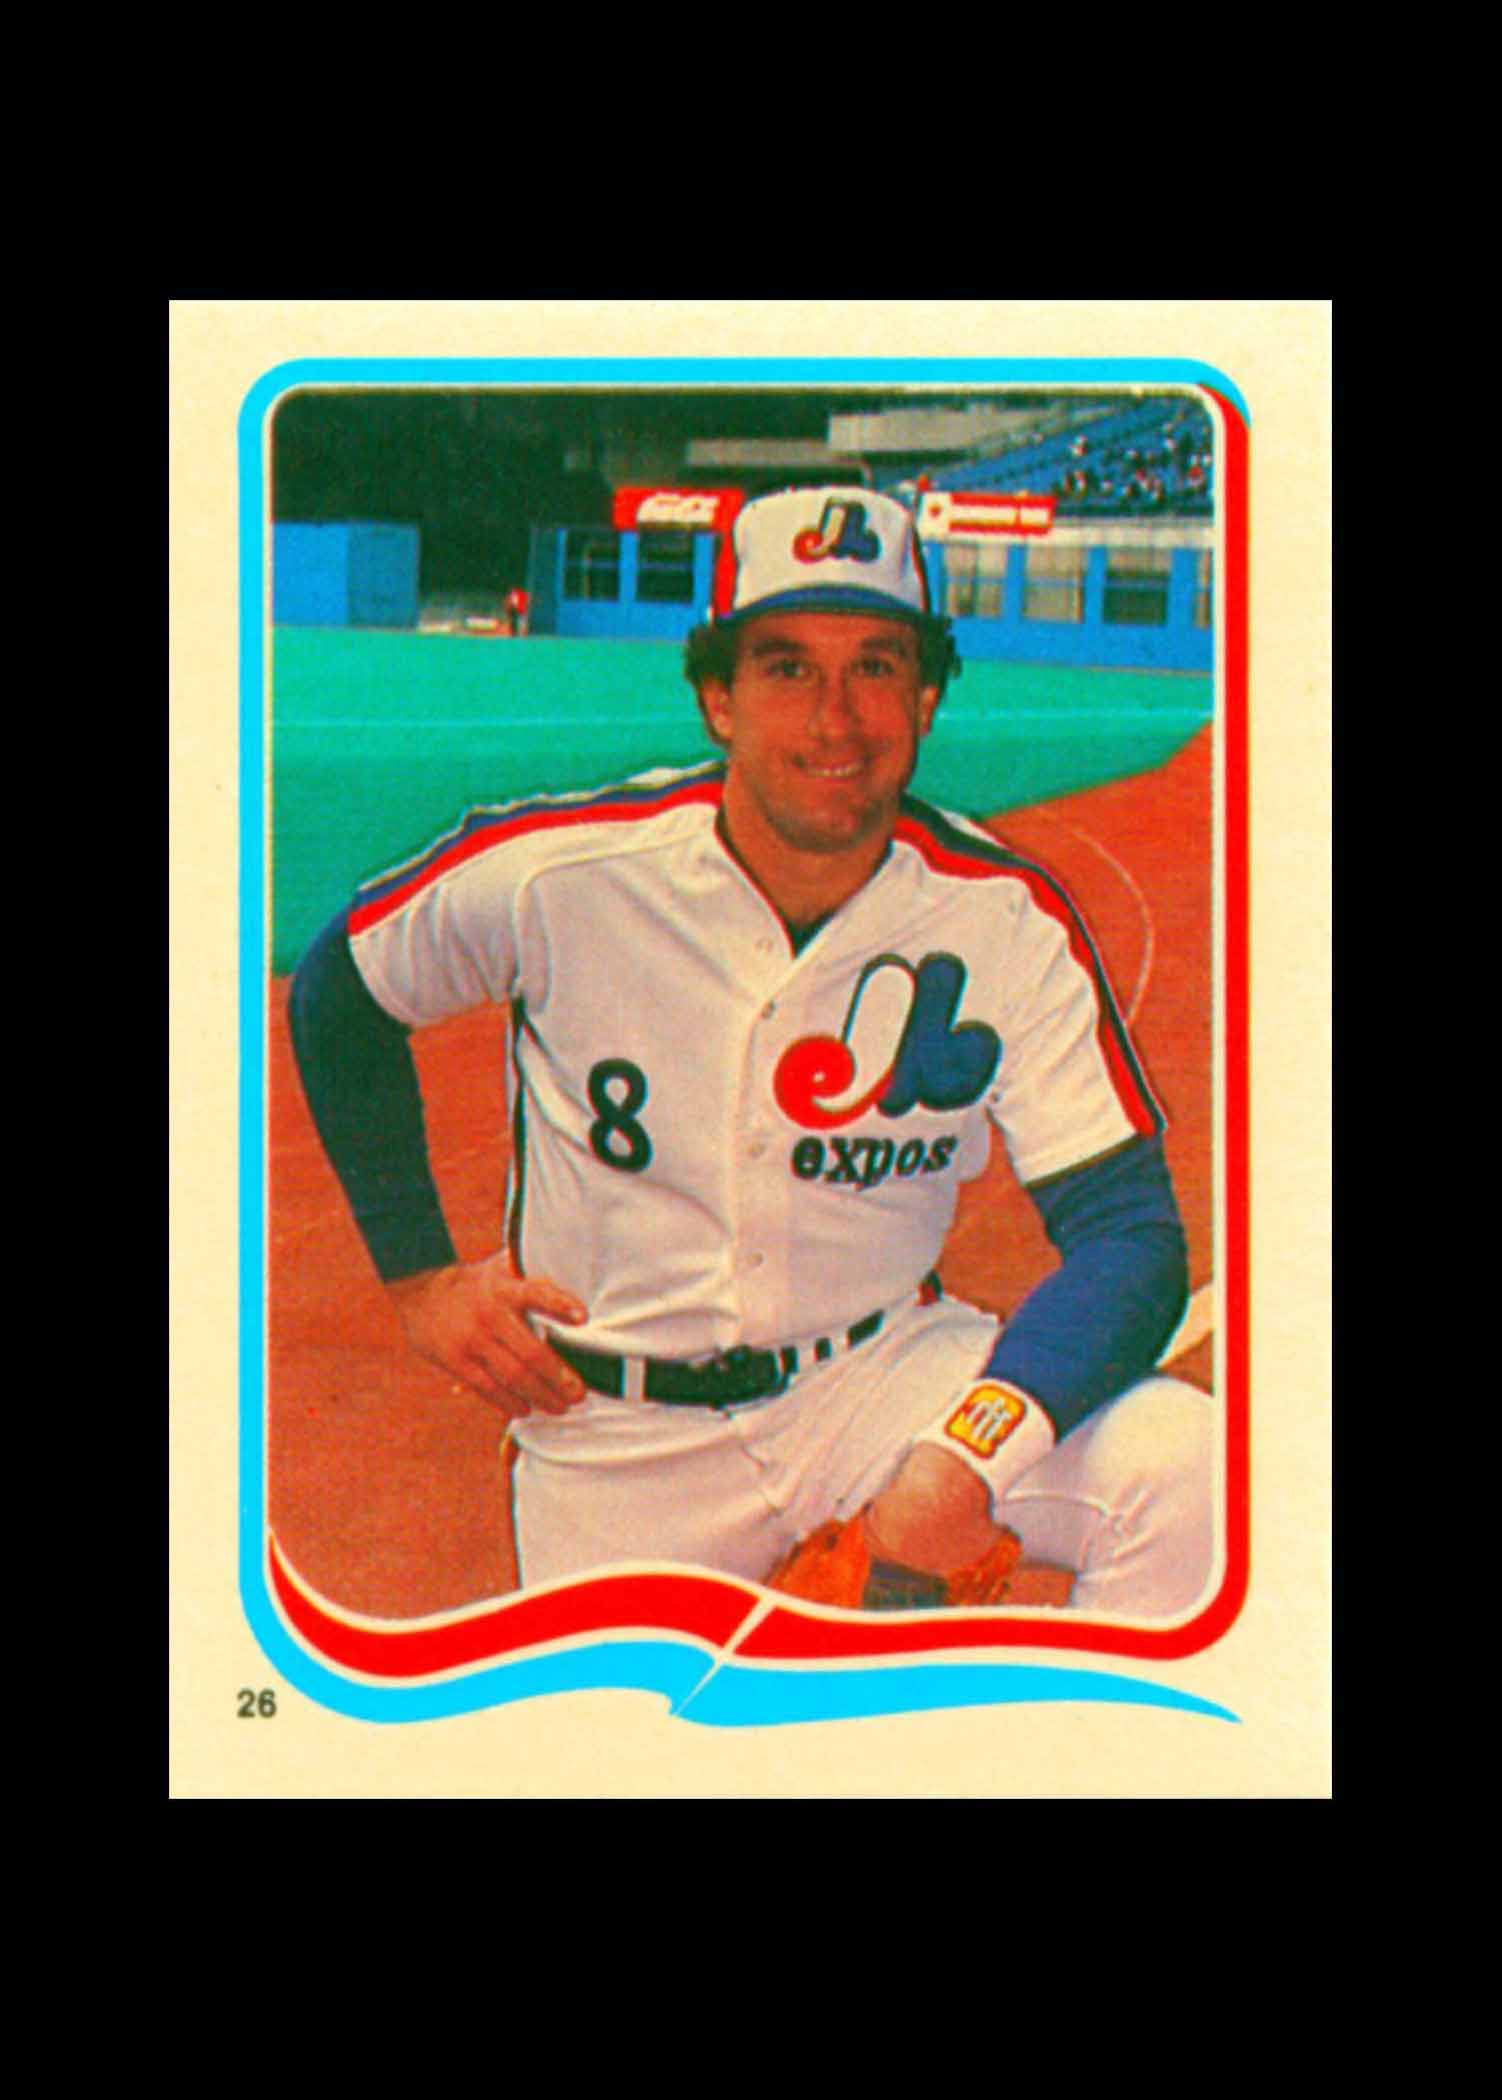 1984 Topps Glossy Send-Ins